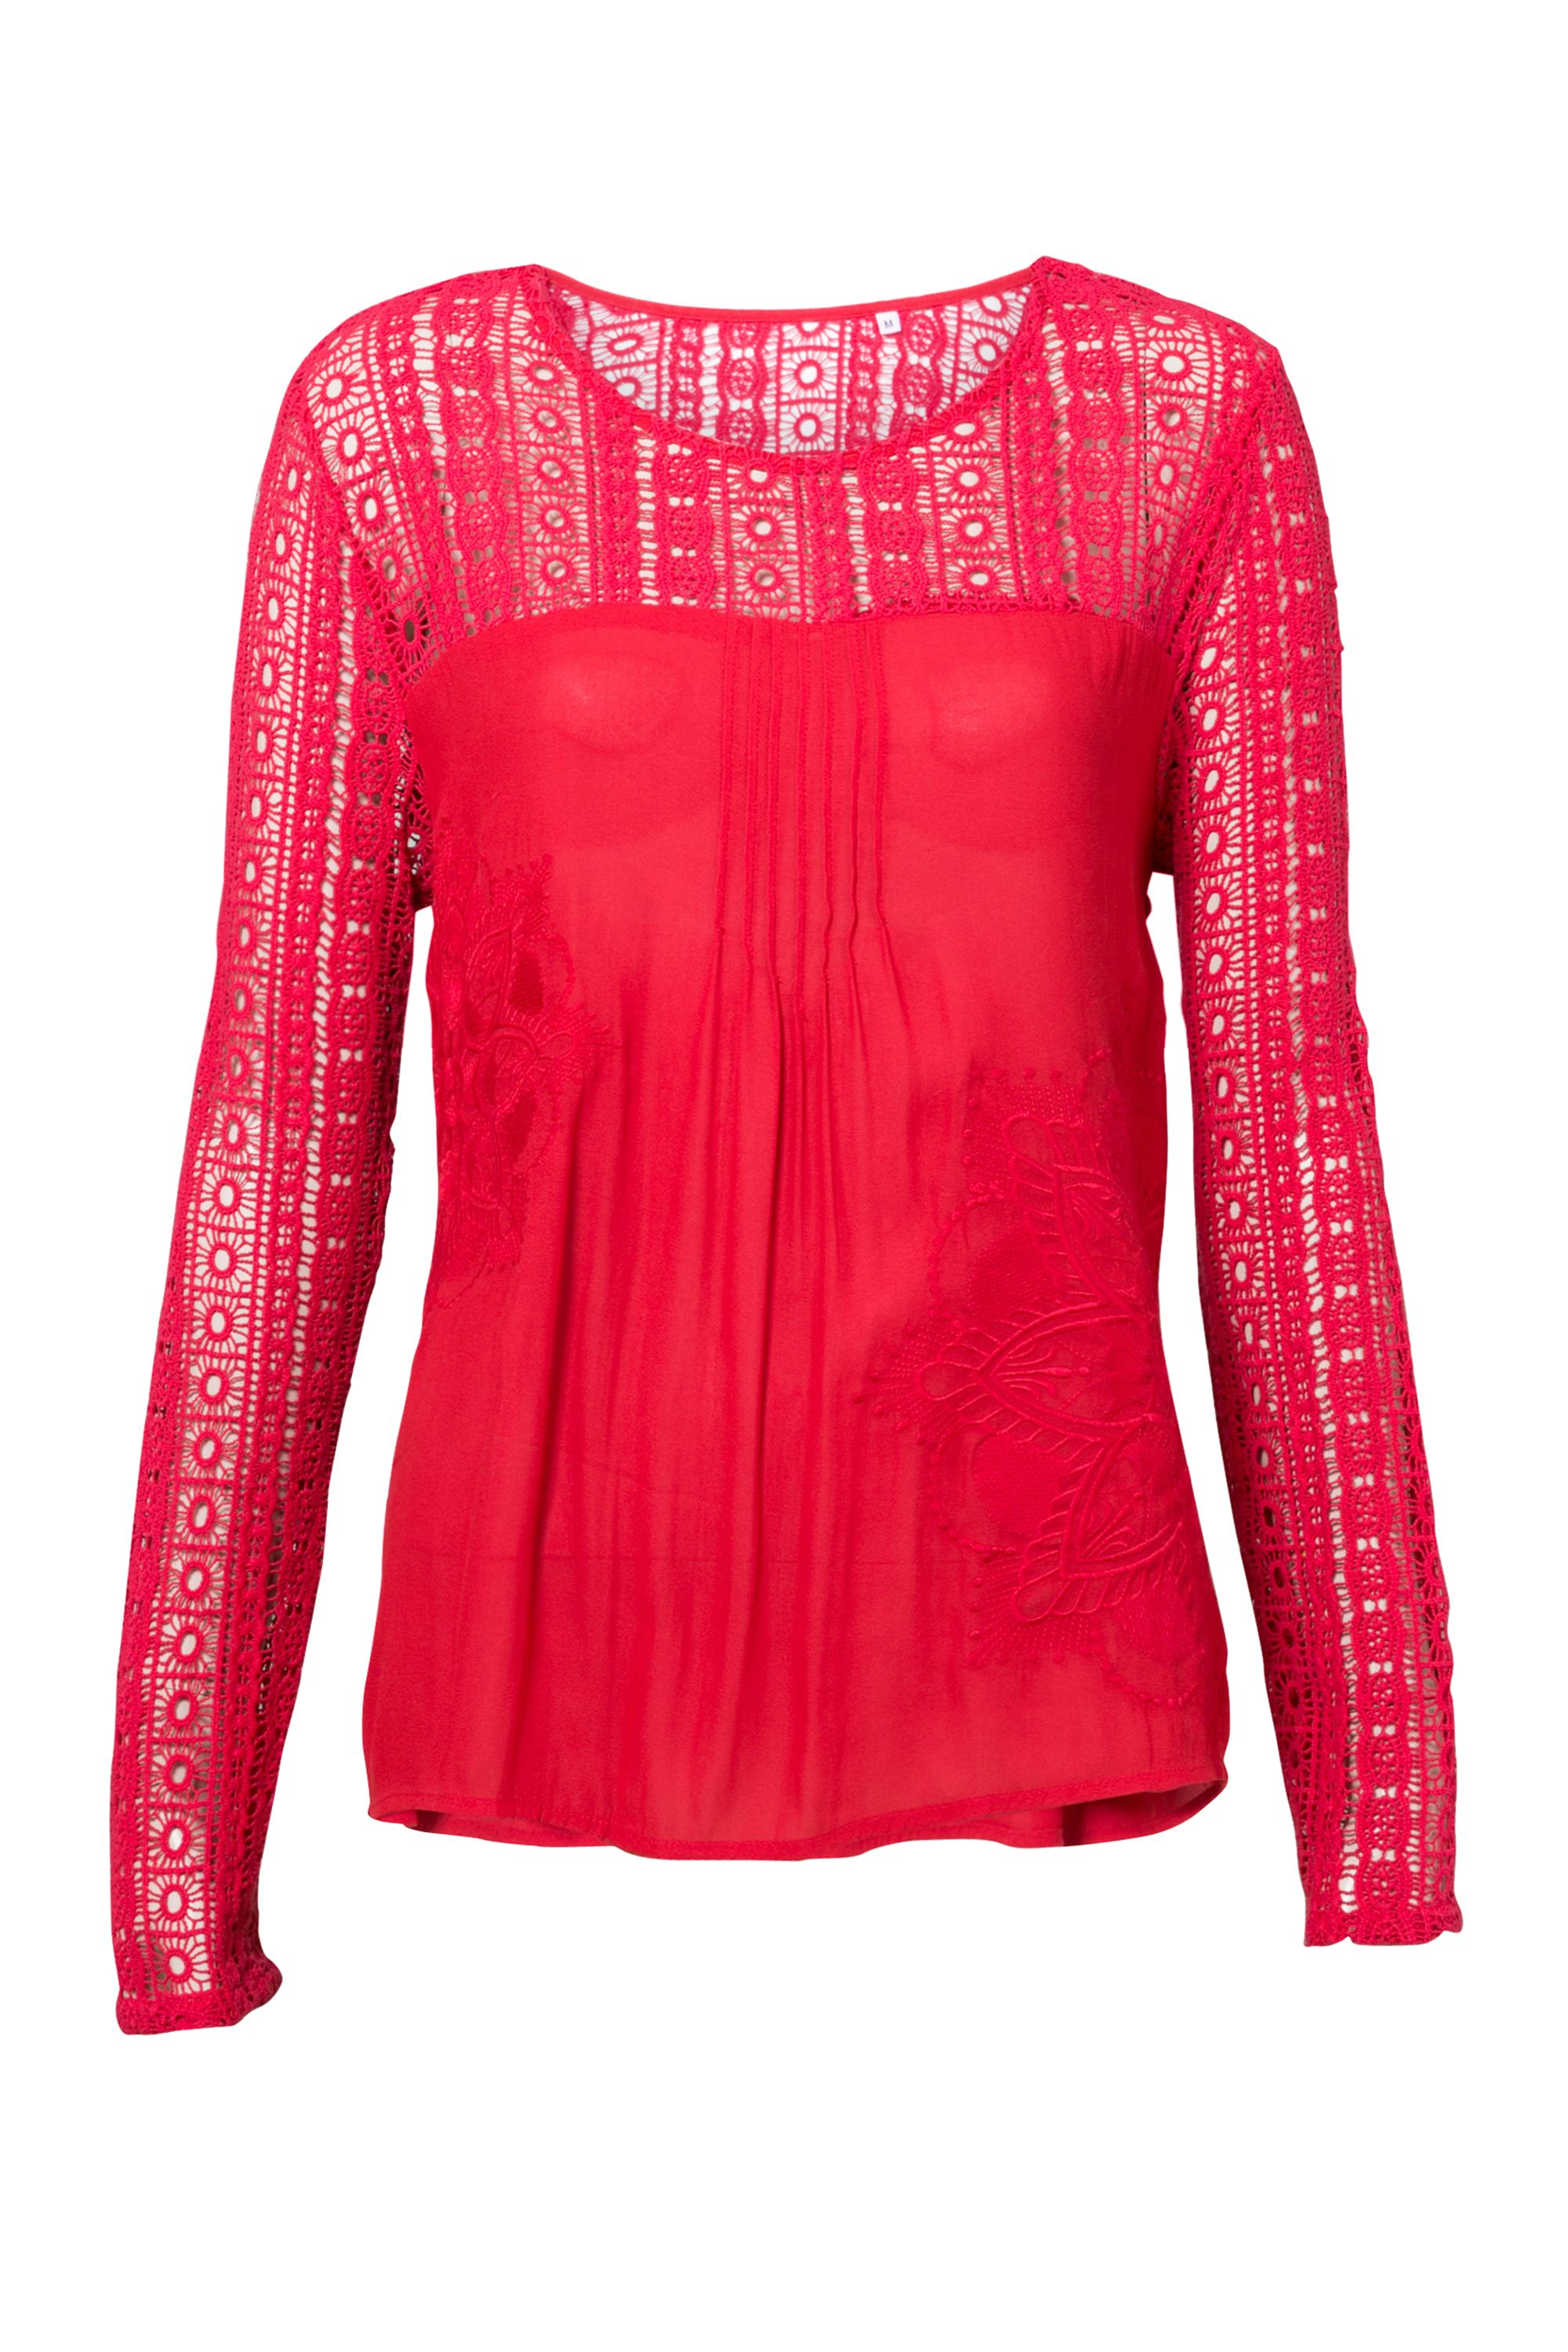 Desigual Blouse Irea, Red